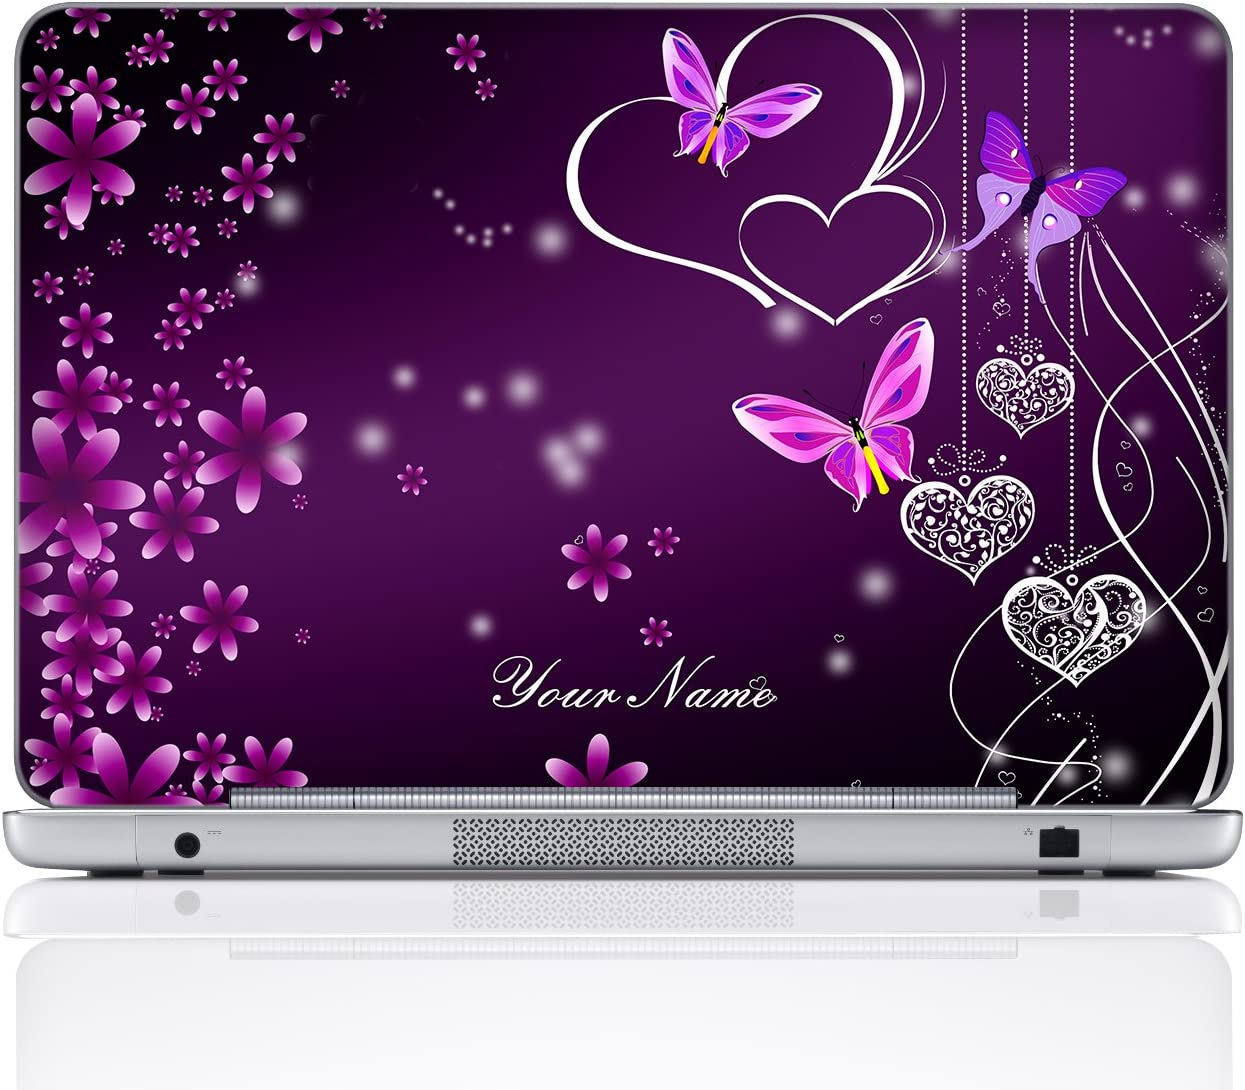 Meffort Inc Personalized Laptop Notebook Notebook Skin Sticker Cover Art Decal, Customize Your Name (15.6 Inch, Purple Hearts Butterflies)